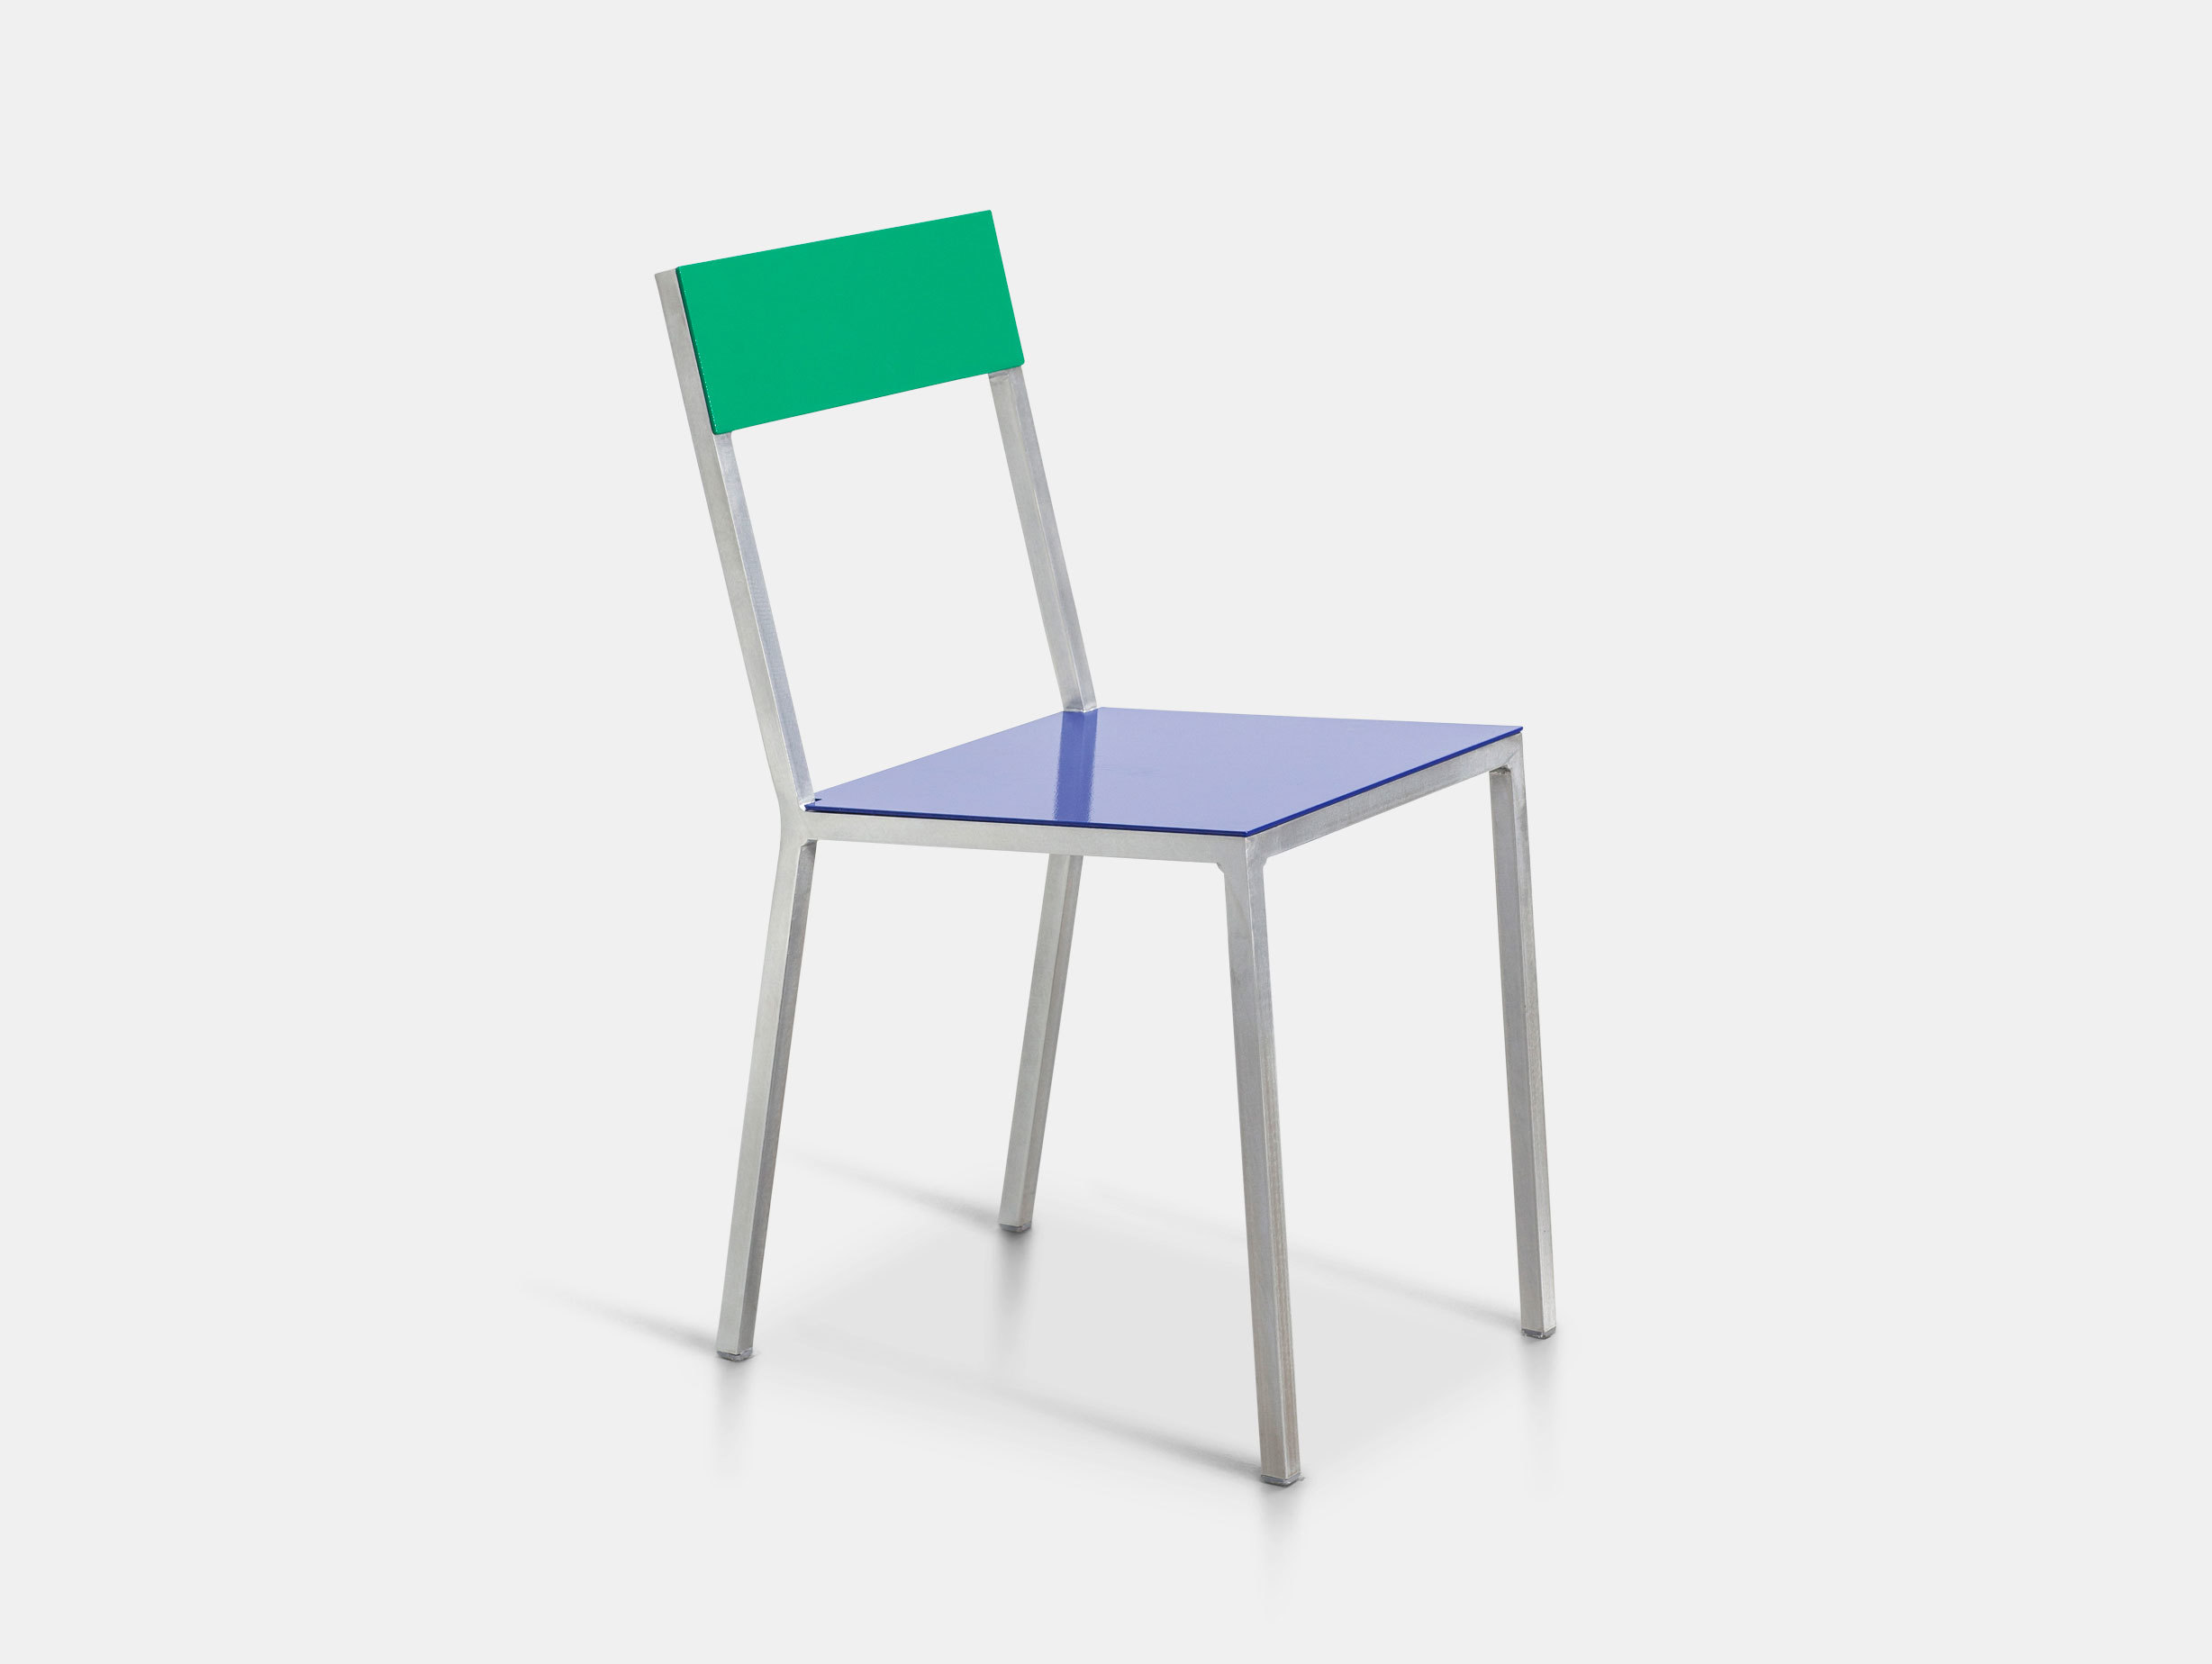 Valerie Objects Alu Chair Seatblue Backgreen Muller Van Severen